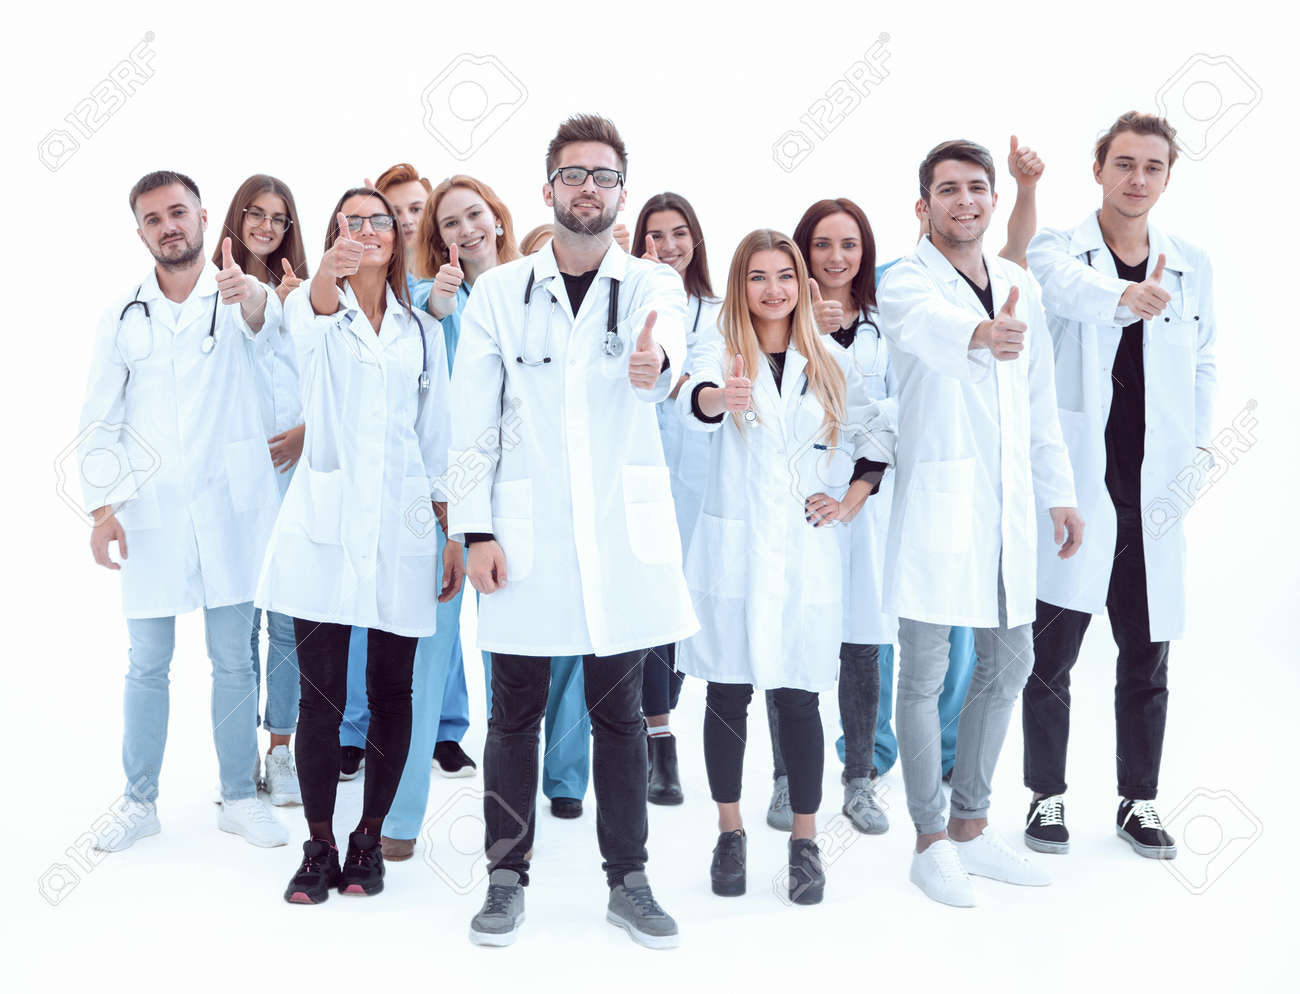 large group of diverse doctors giving a thumbs up - 165815610